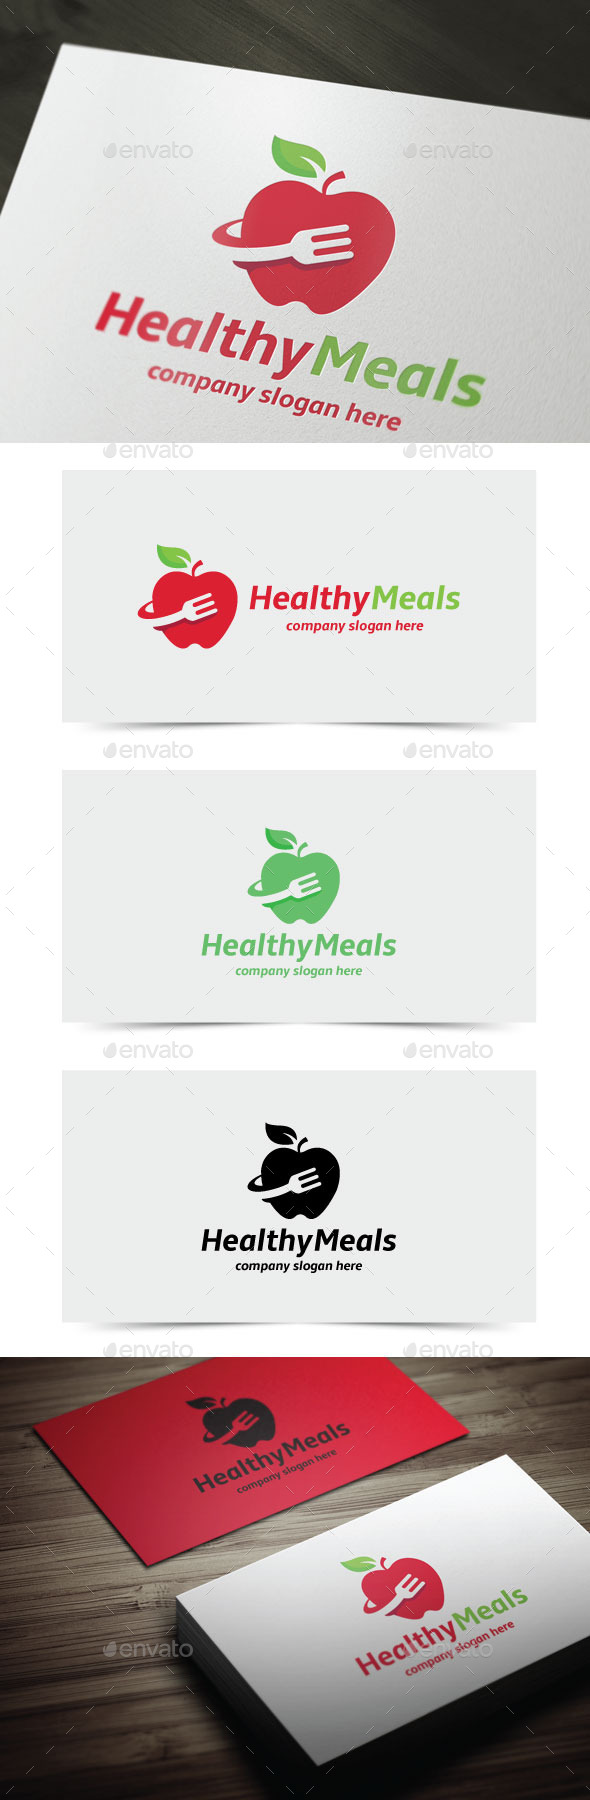 GraphicRiver Healthy Meals 11819247